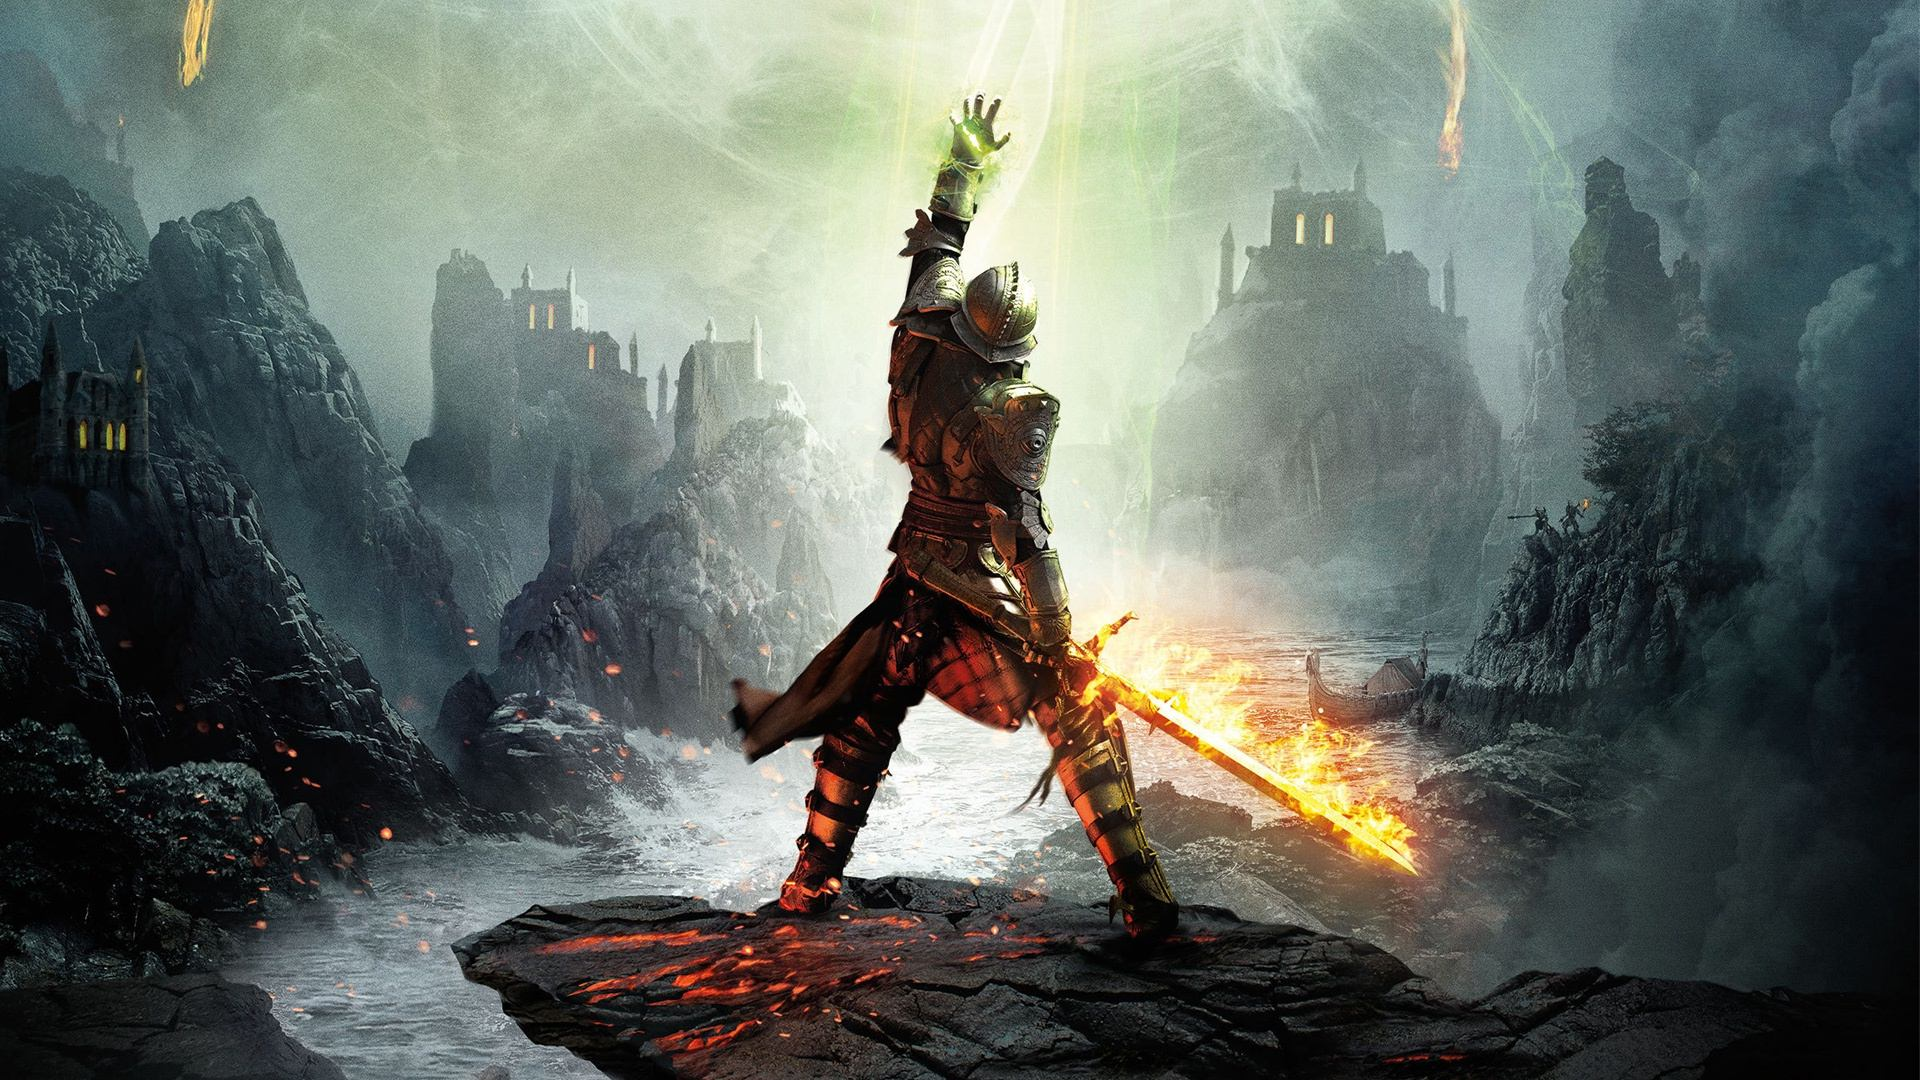 Dragon Age Inquisition Character Poster Dragon Age Inquisition Review